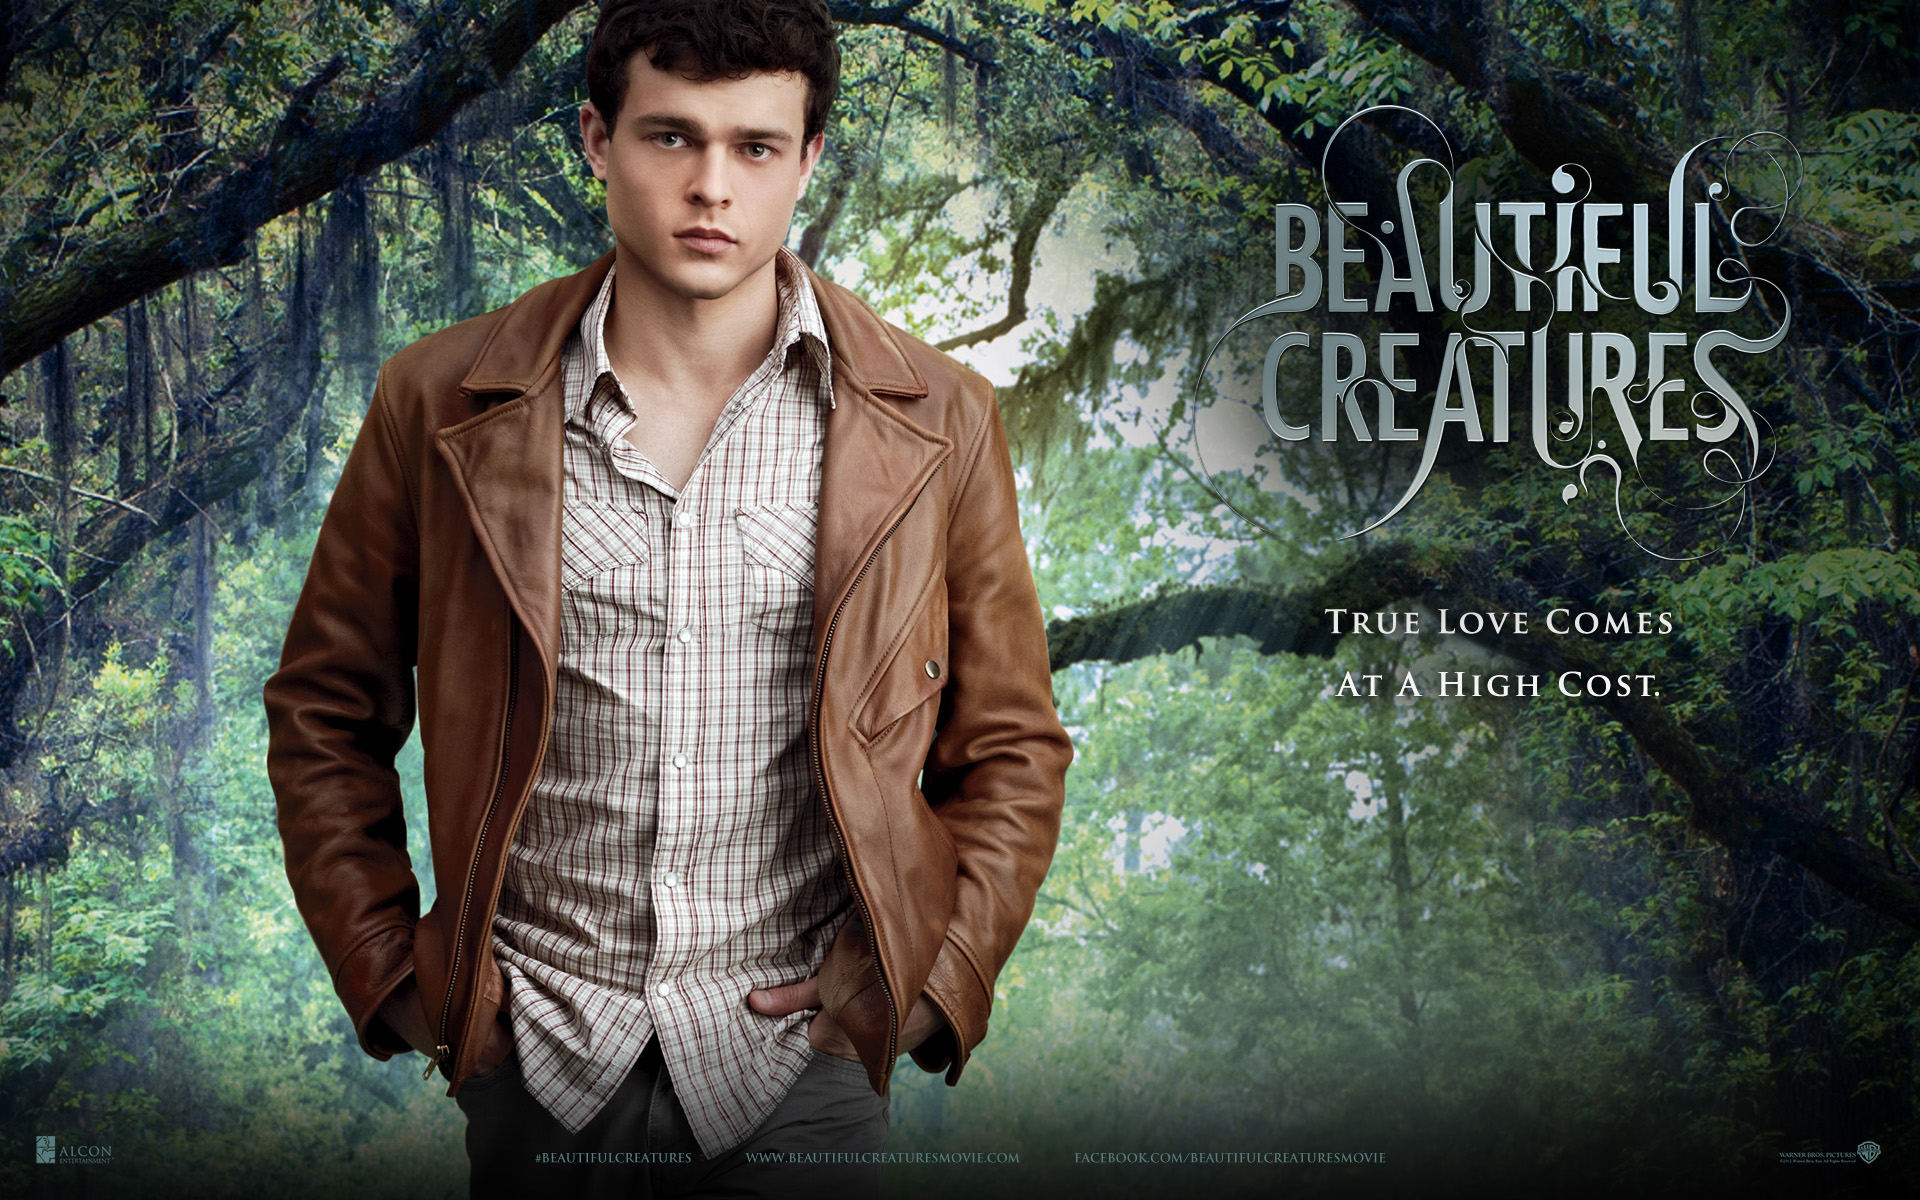 Nice wallpapers Beautiful Creatures 1920x1200px